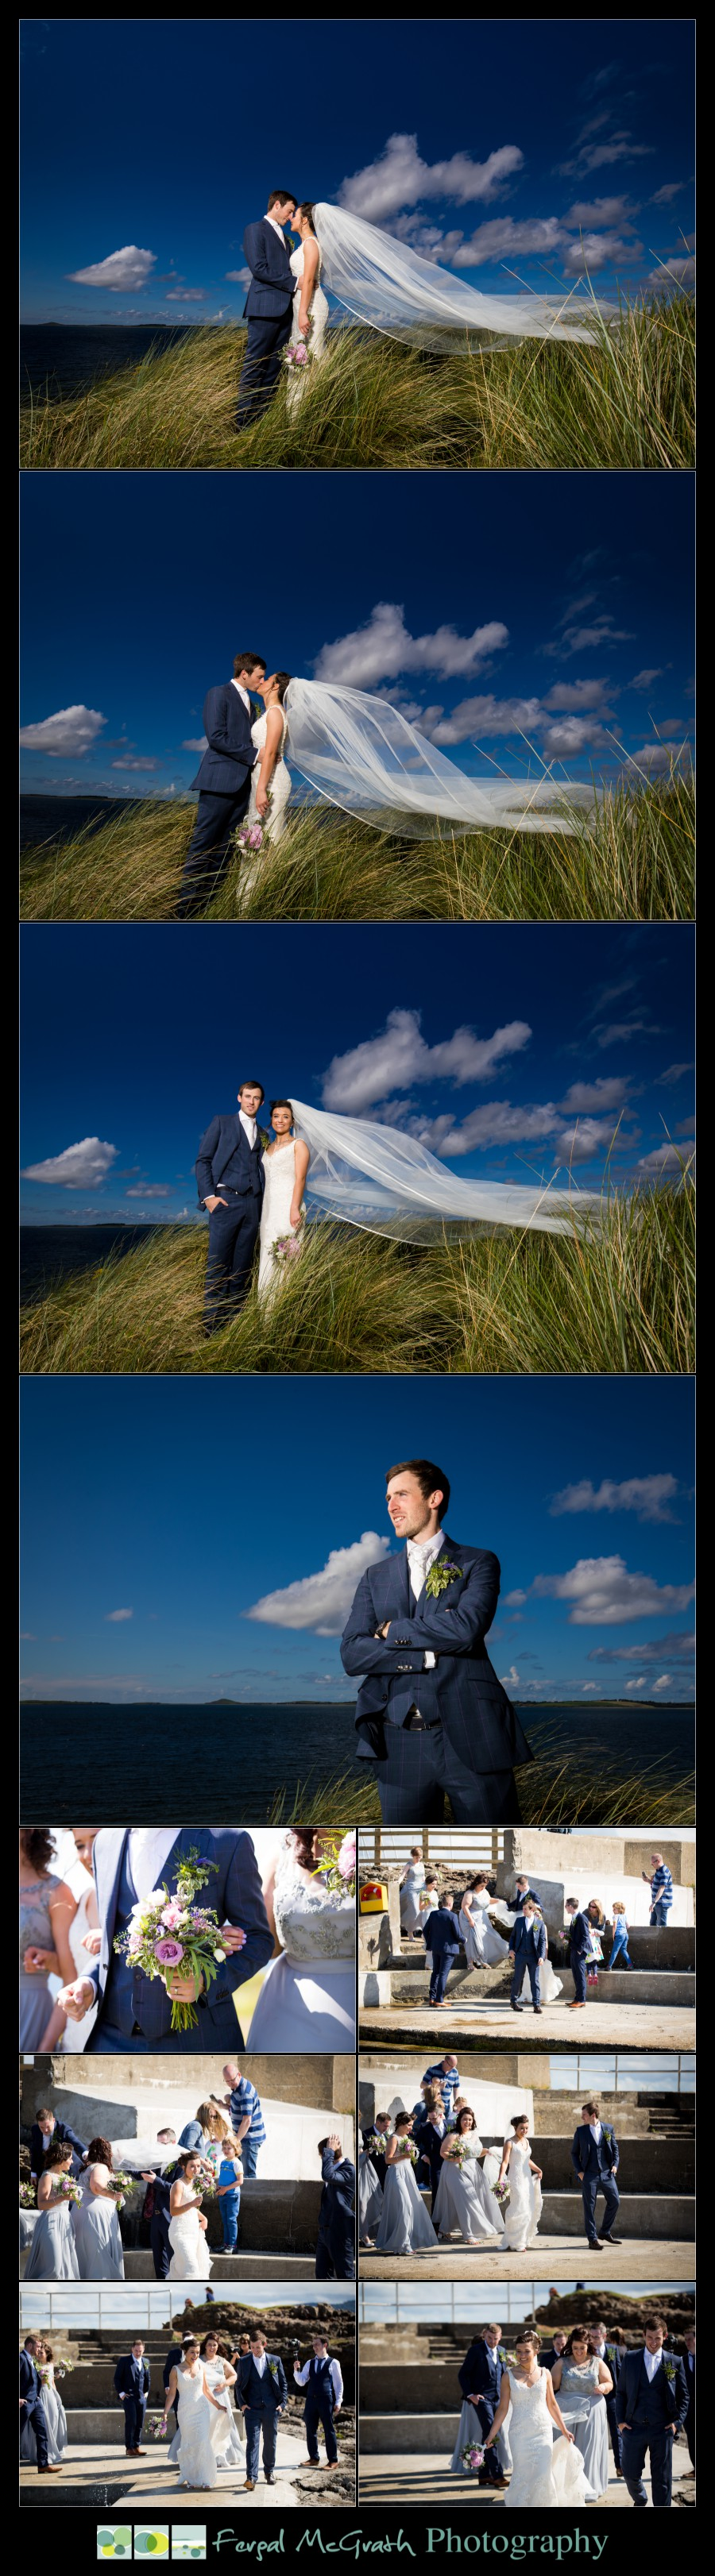 Clayton Hotel Sligo Wedding photos at rosses point beach